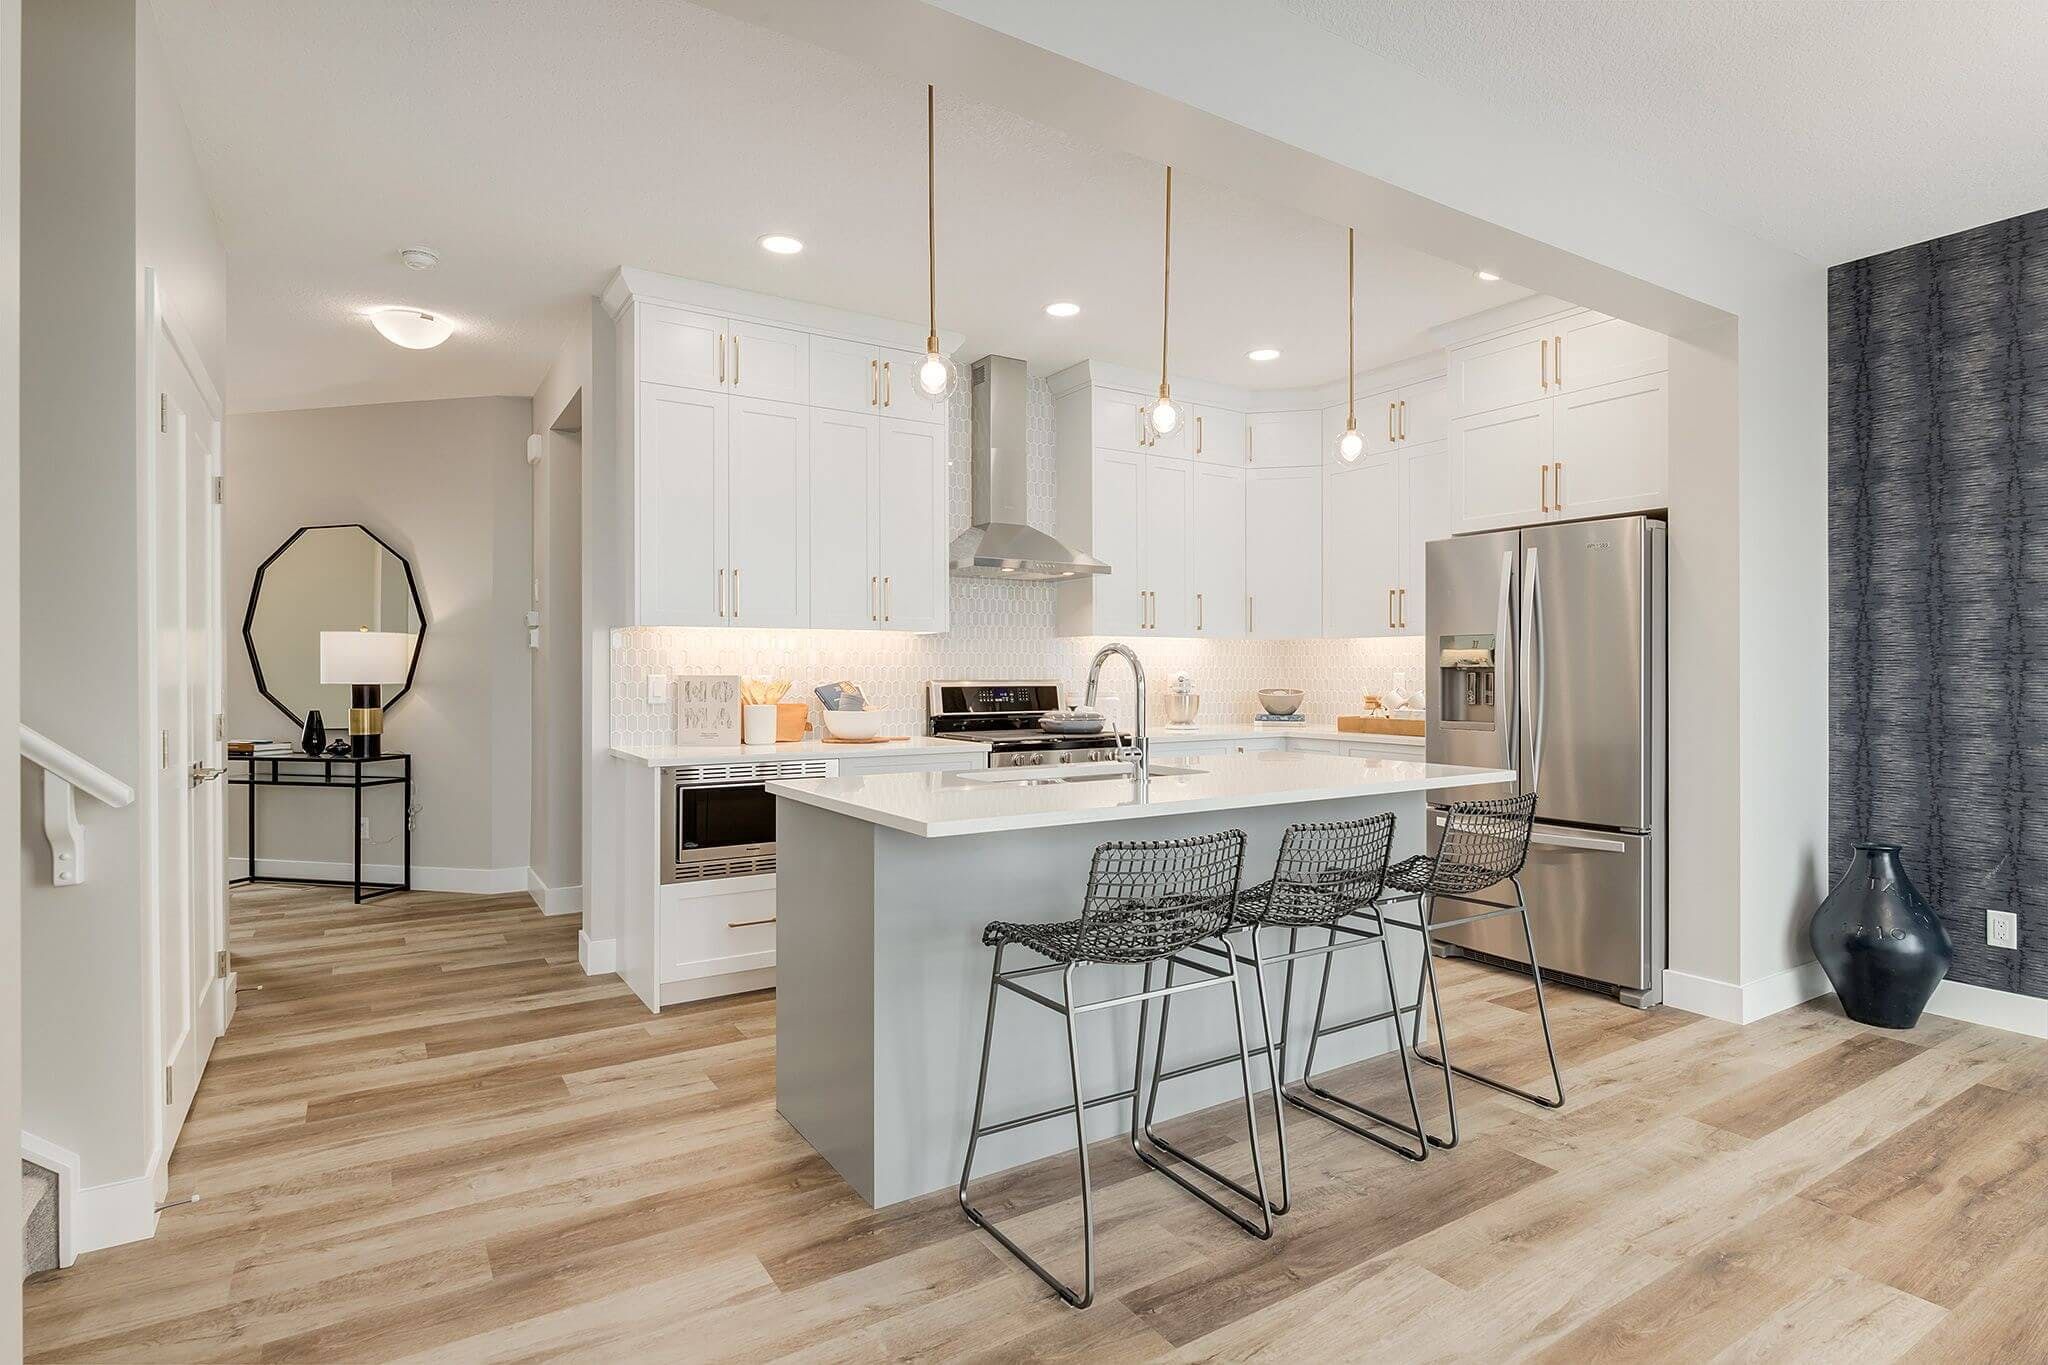 A kitchen of a showhome